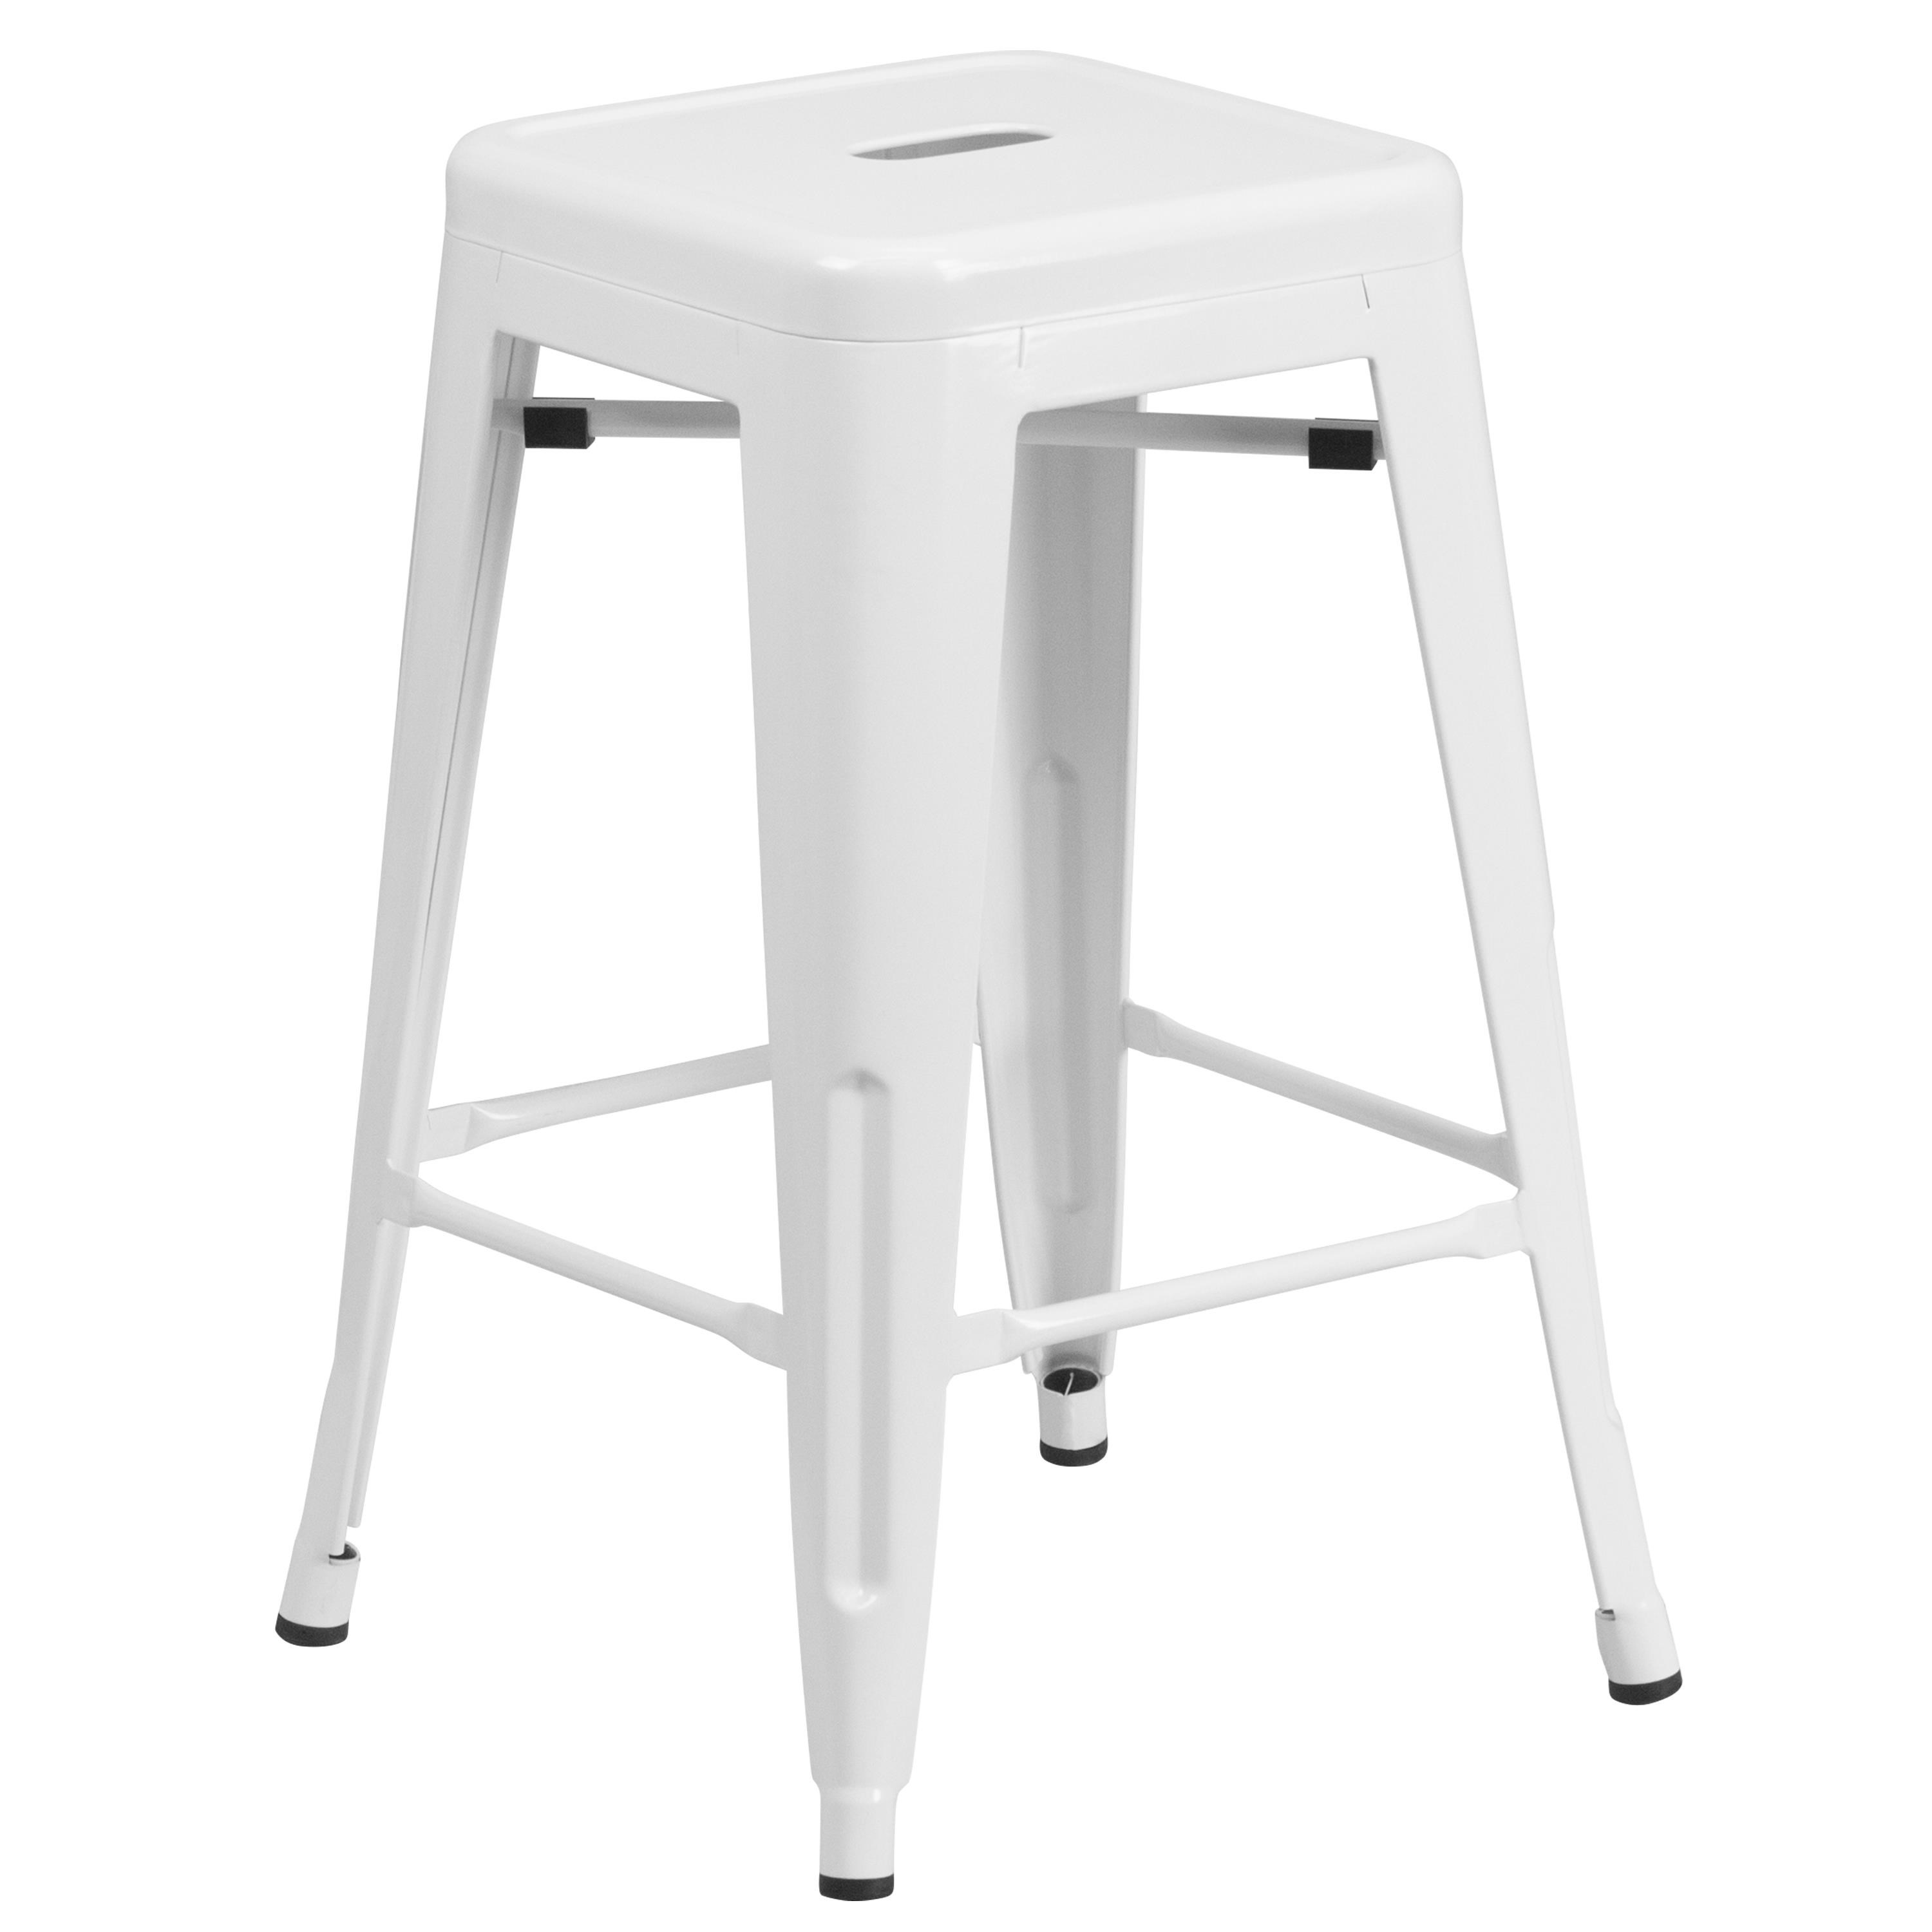 """Flash Furniture Back less Stool 24"""" wHITE sTOOL - Item Number: CH-31320-24-WW-GG"""